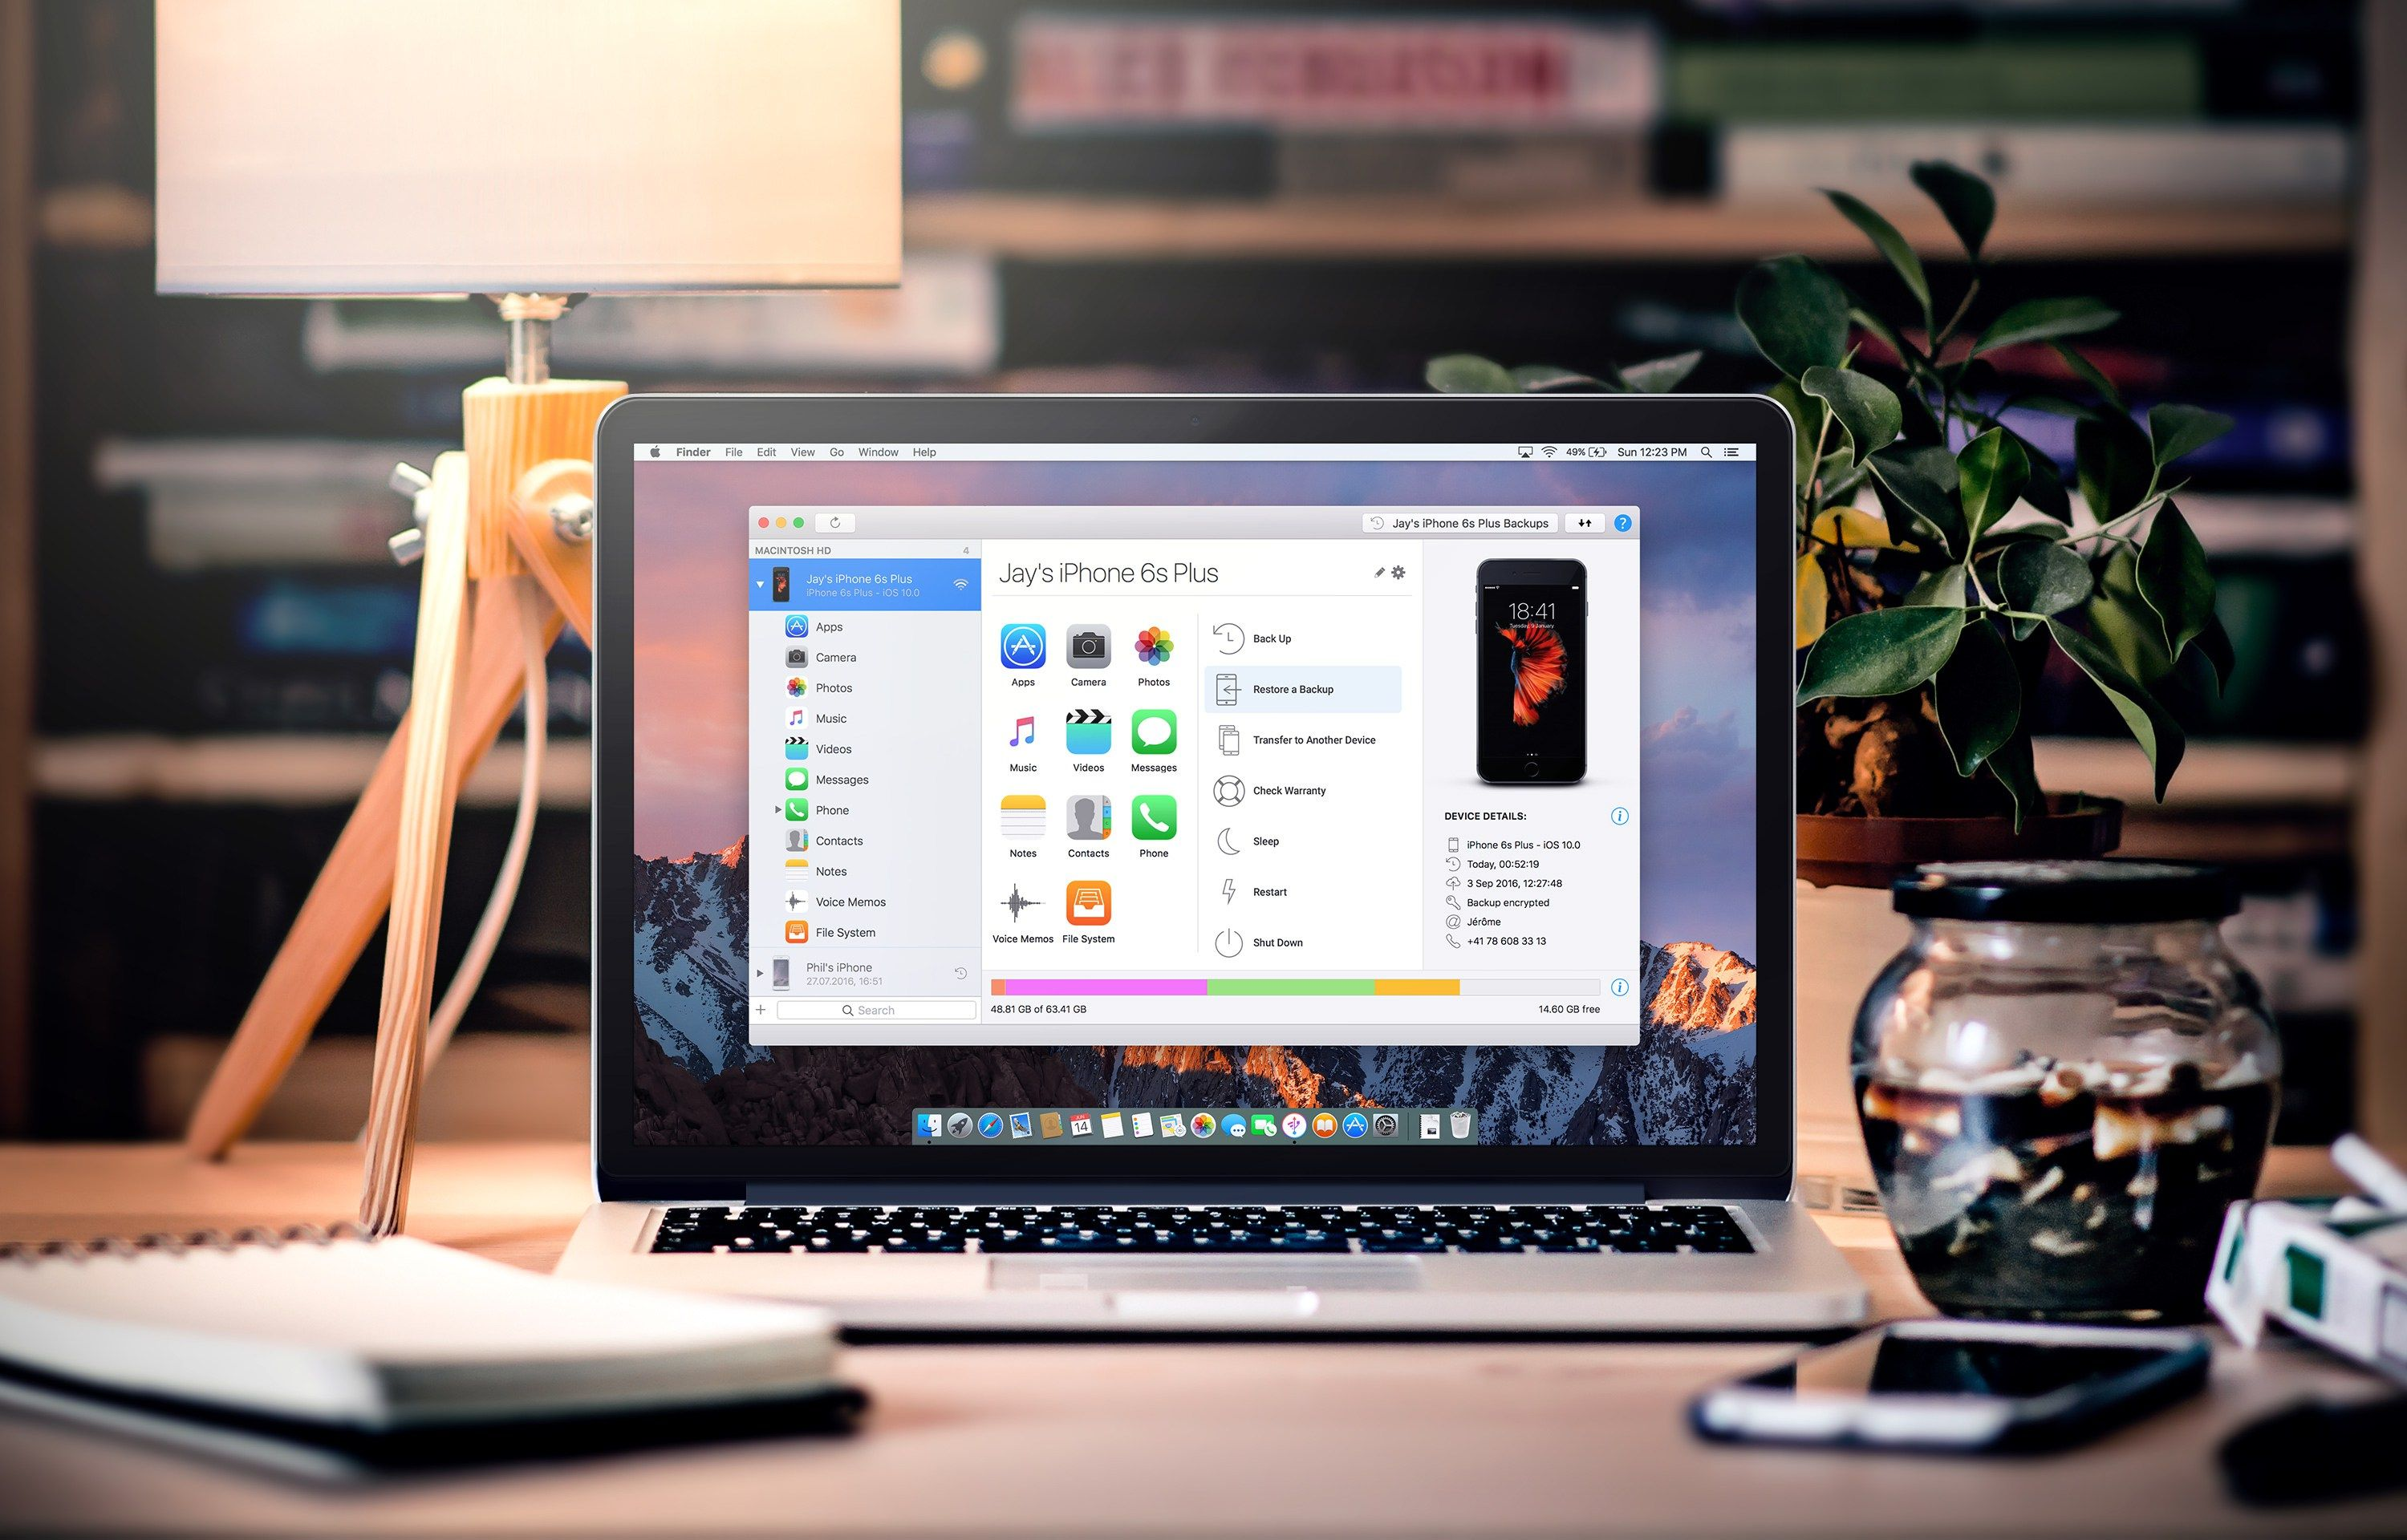 Download manycam enterprise 5 0 5 2 multilingual - Lumion 7 3 Pro Crack Mac 2017 Kickass Torrent Is Awesome And Wonderful Software For A Designer They Can Change Their 3d Models Into Video Pinterest